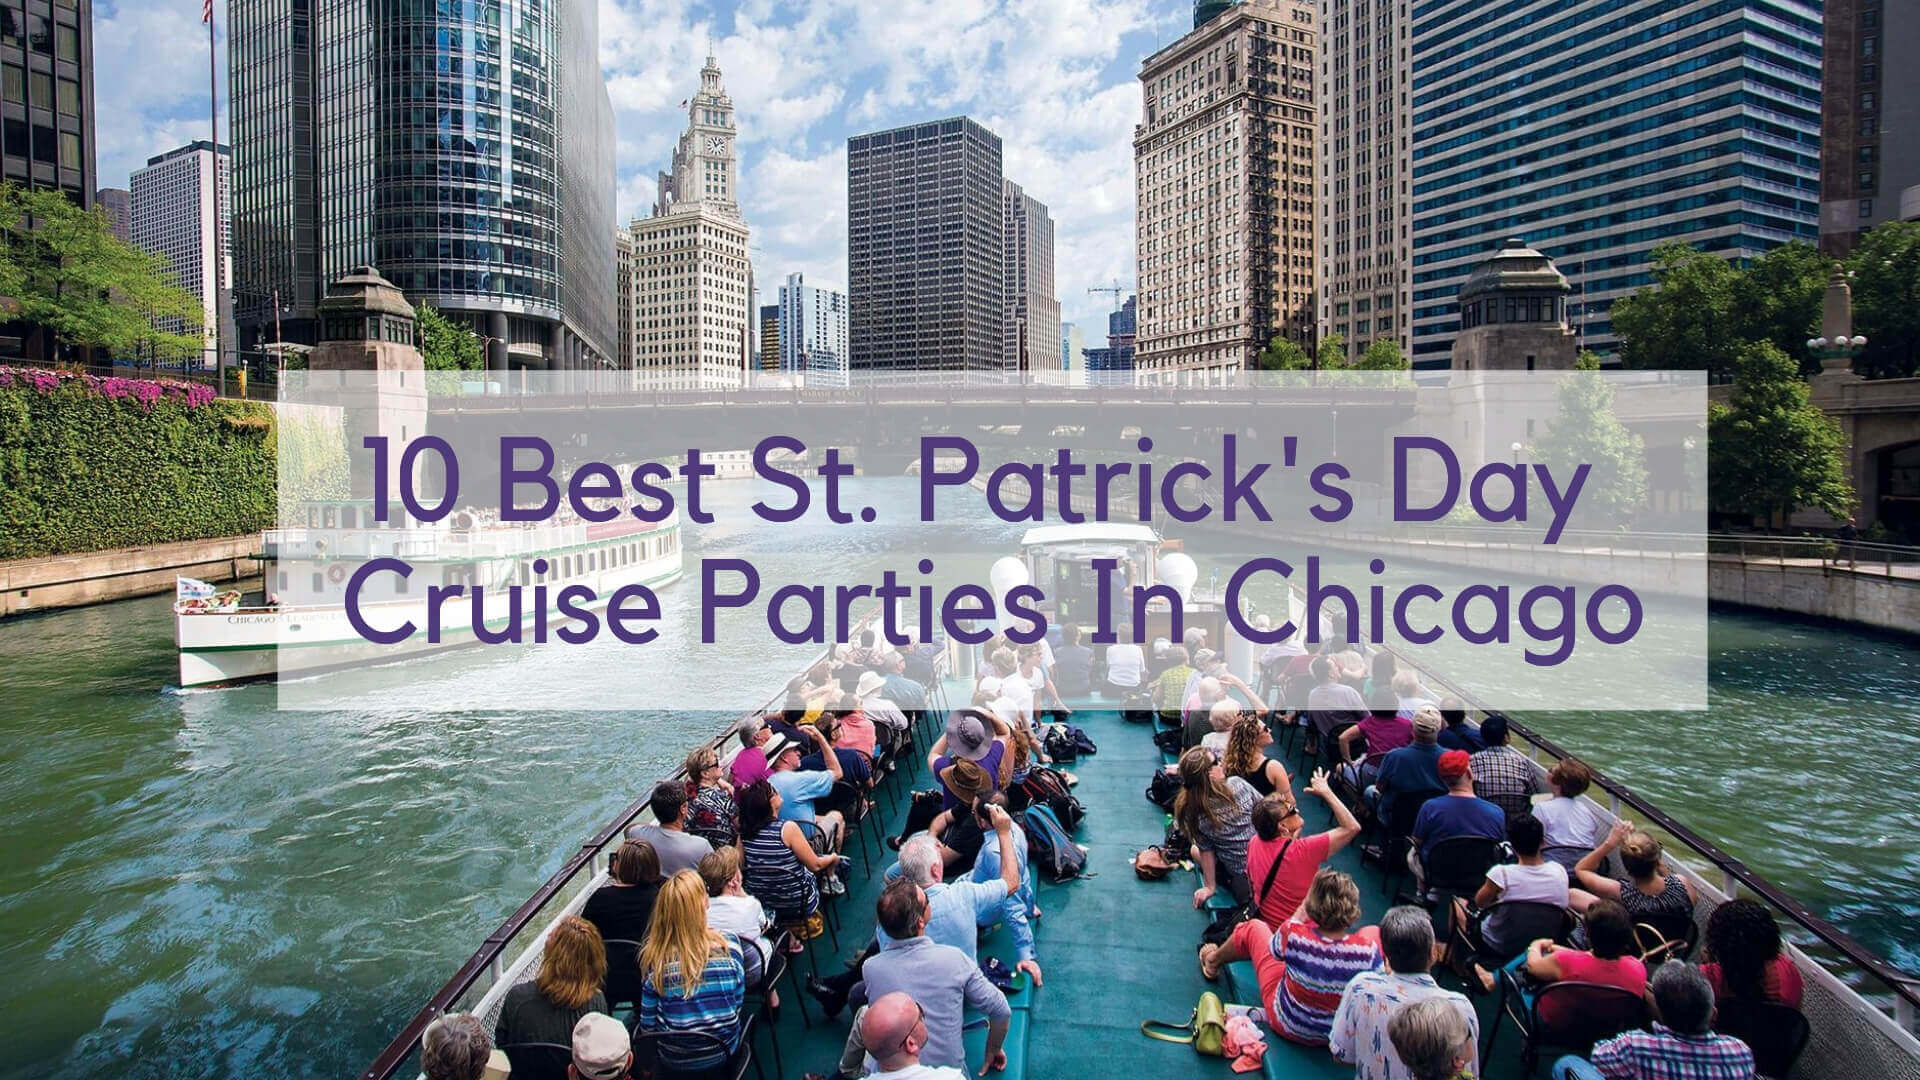 St. Patrick's Day Cruise Parties In Chicago